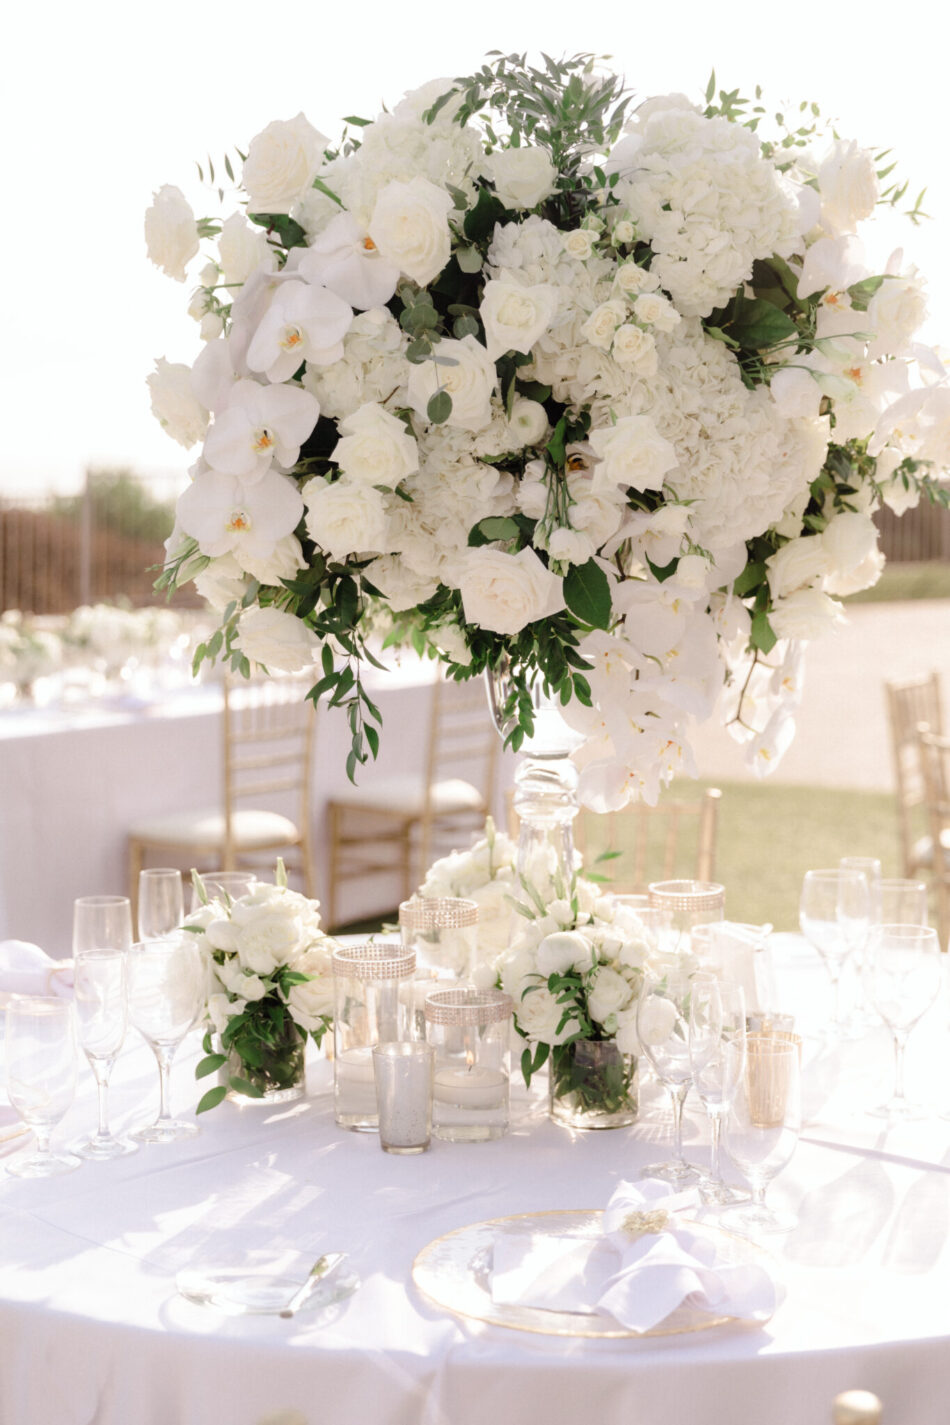 elevated centerpiece, white centepiece, beautiful floral-filled wedding, floral design, florist, wedding florist, wedding flowers, orange county weddings, orange county wedding florist, orange county florist, orange county floral design, flowers by cina